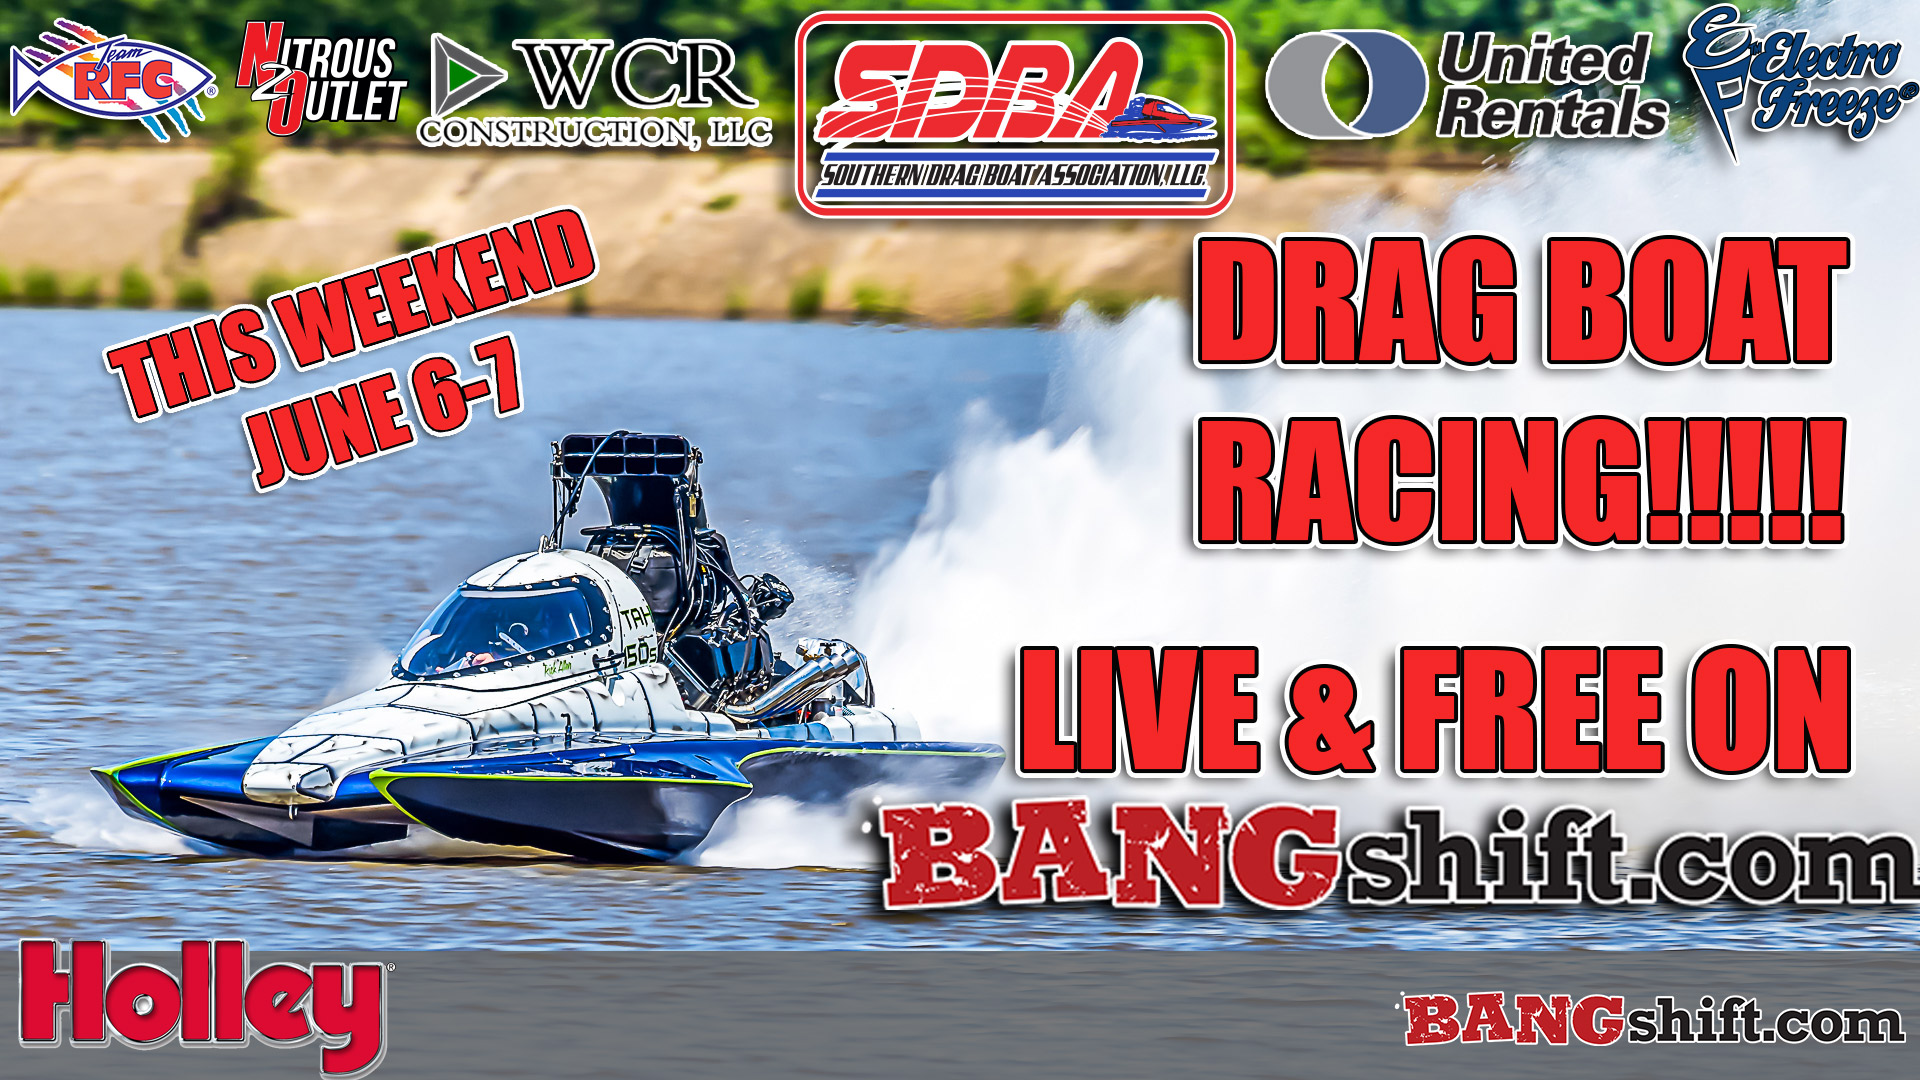 FREE LIVE STREAMING VIDEO THIS WEEKEND!!!! The SDBA Drag Boats Will Be LIVE On BANGshift!